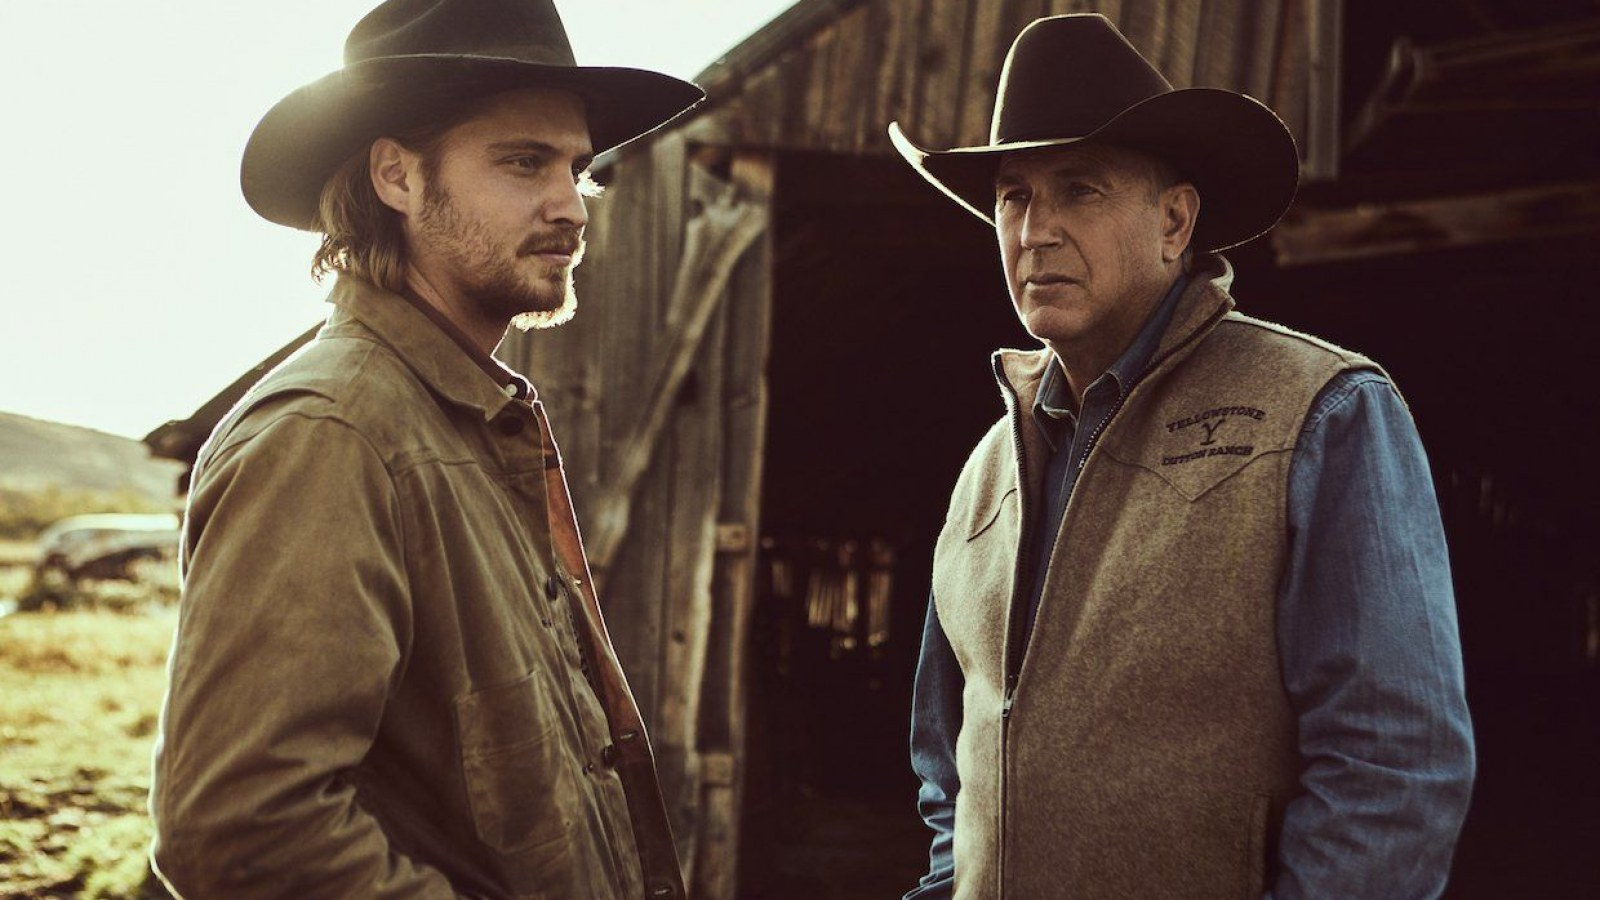 Yellowstone Season 3 Episode 4 Release Date